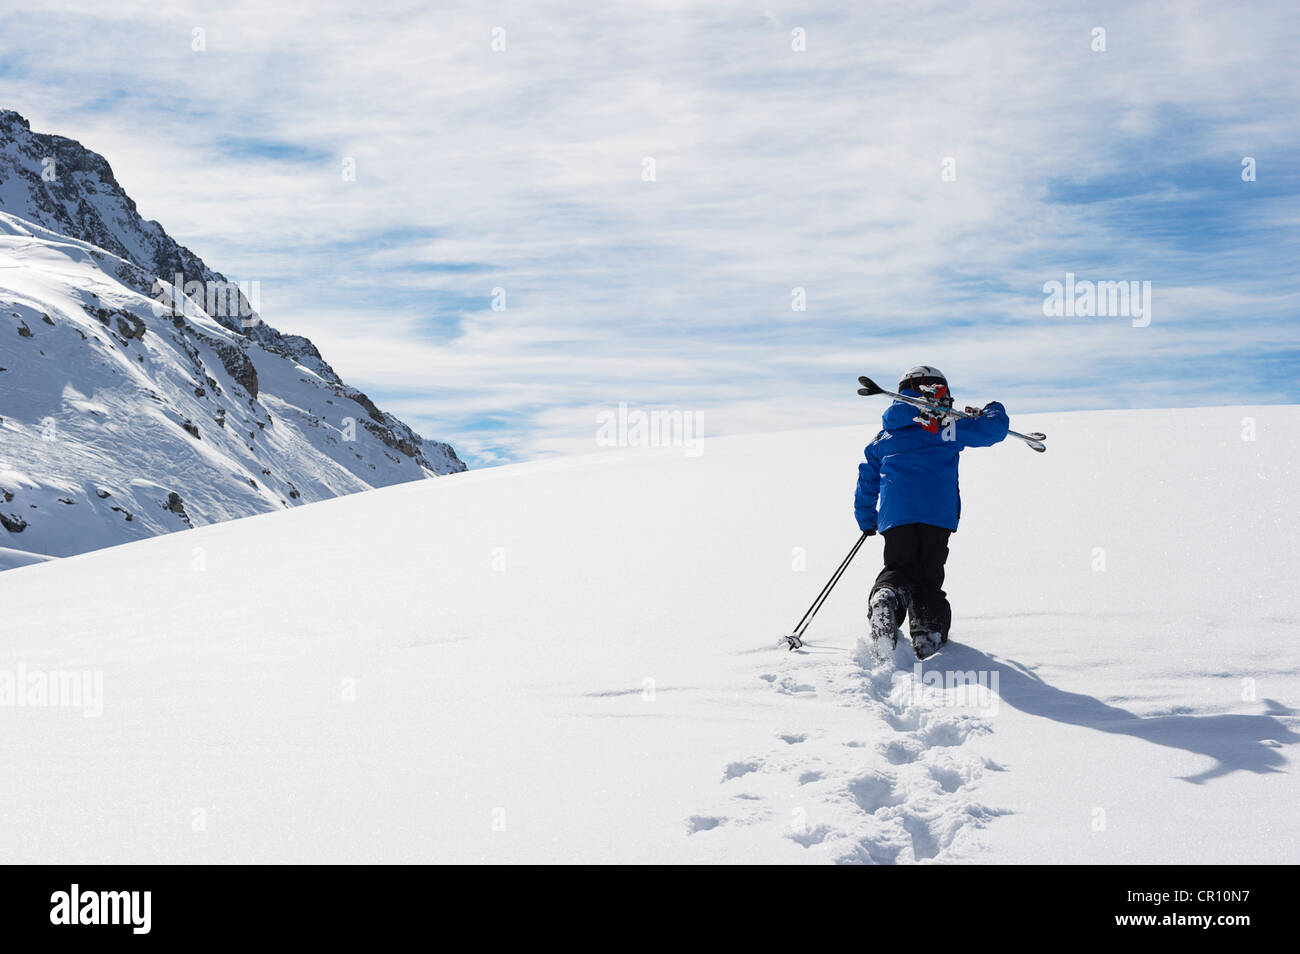 Child carrying skis up snowy mountain - Stock Image